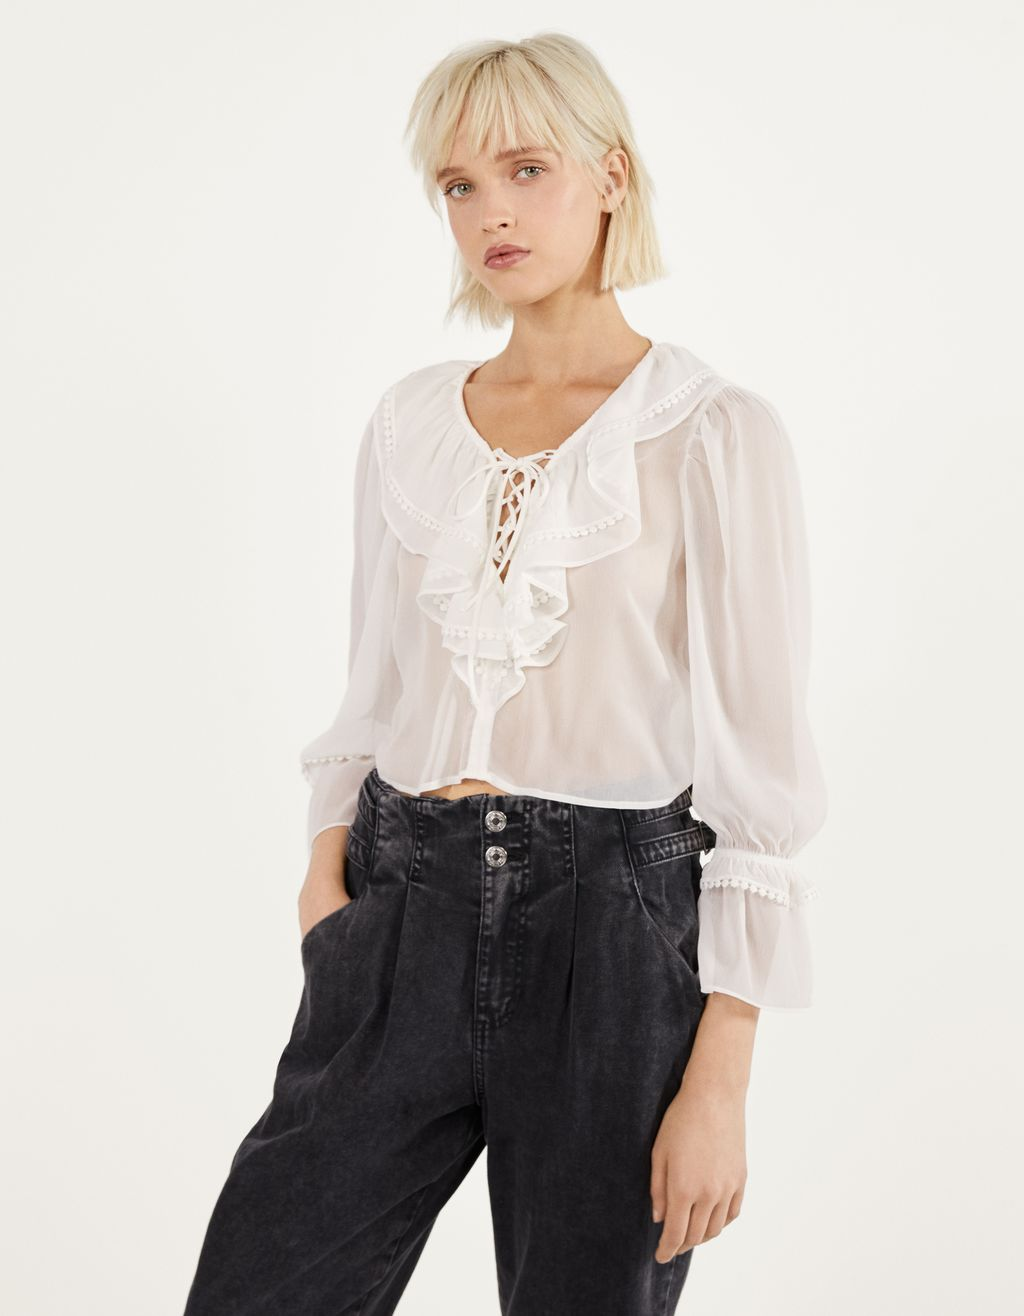 Lace trim blouse with ruffles